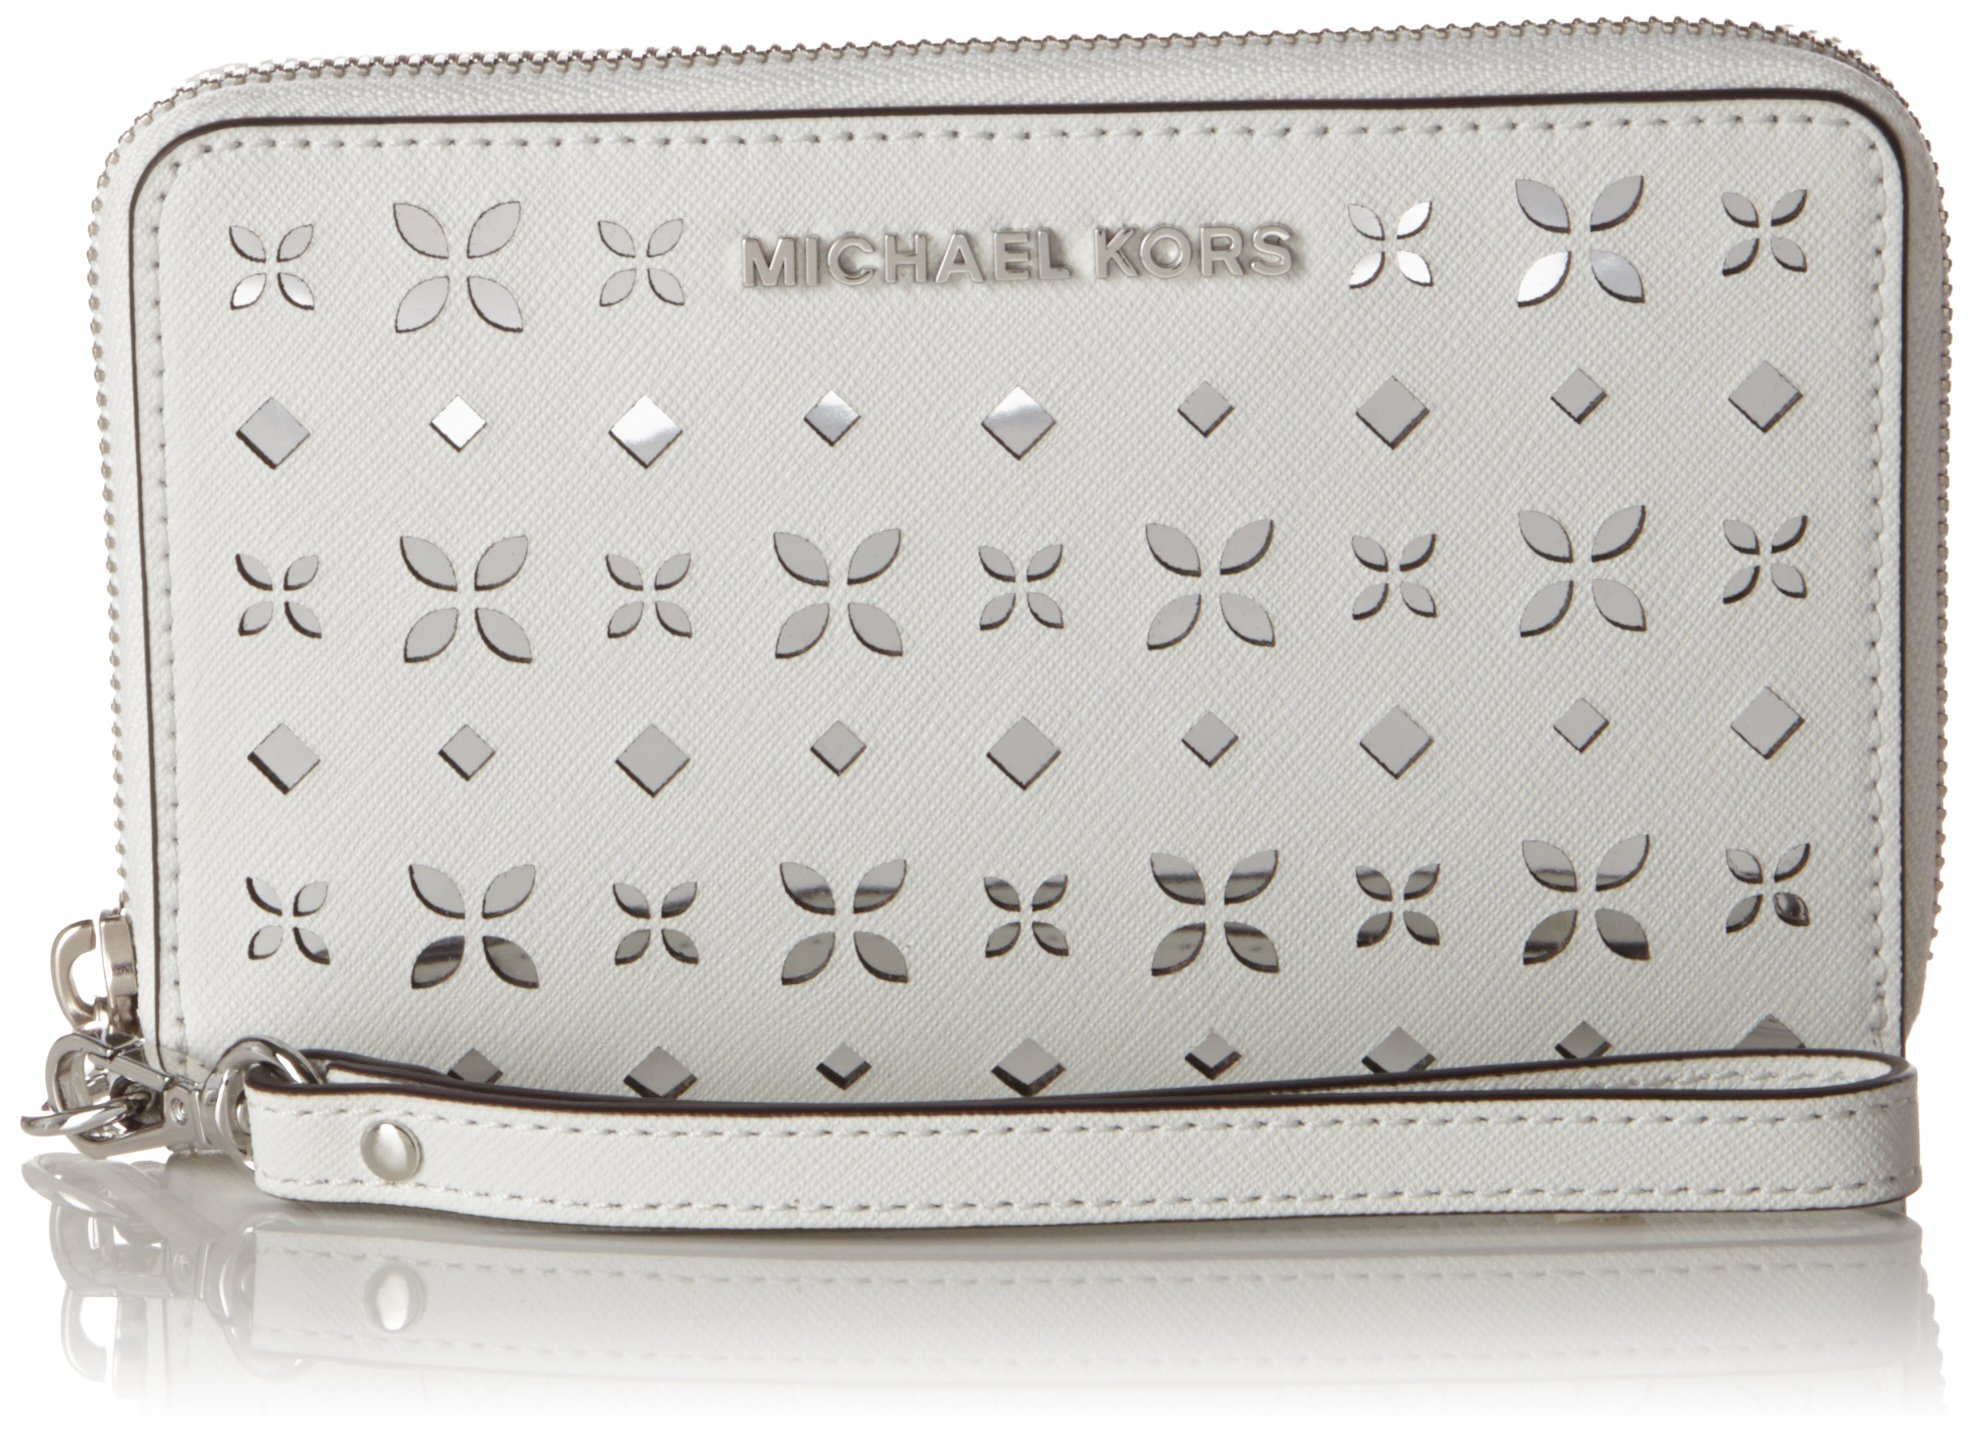 Michael Kors Jet Set Travel Perforated White Leather Wristlet Wallet Phone Case by Michael Kors